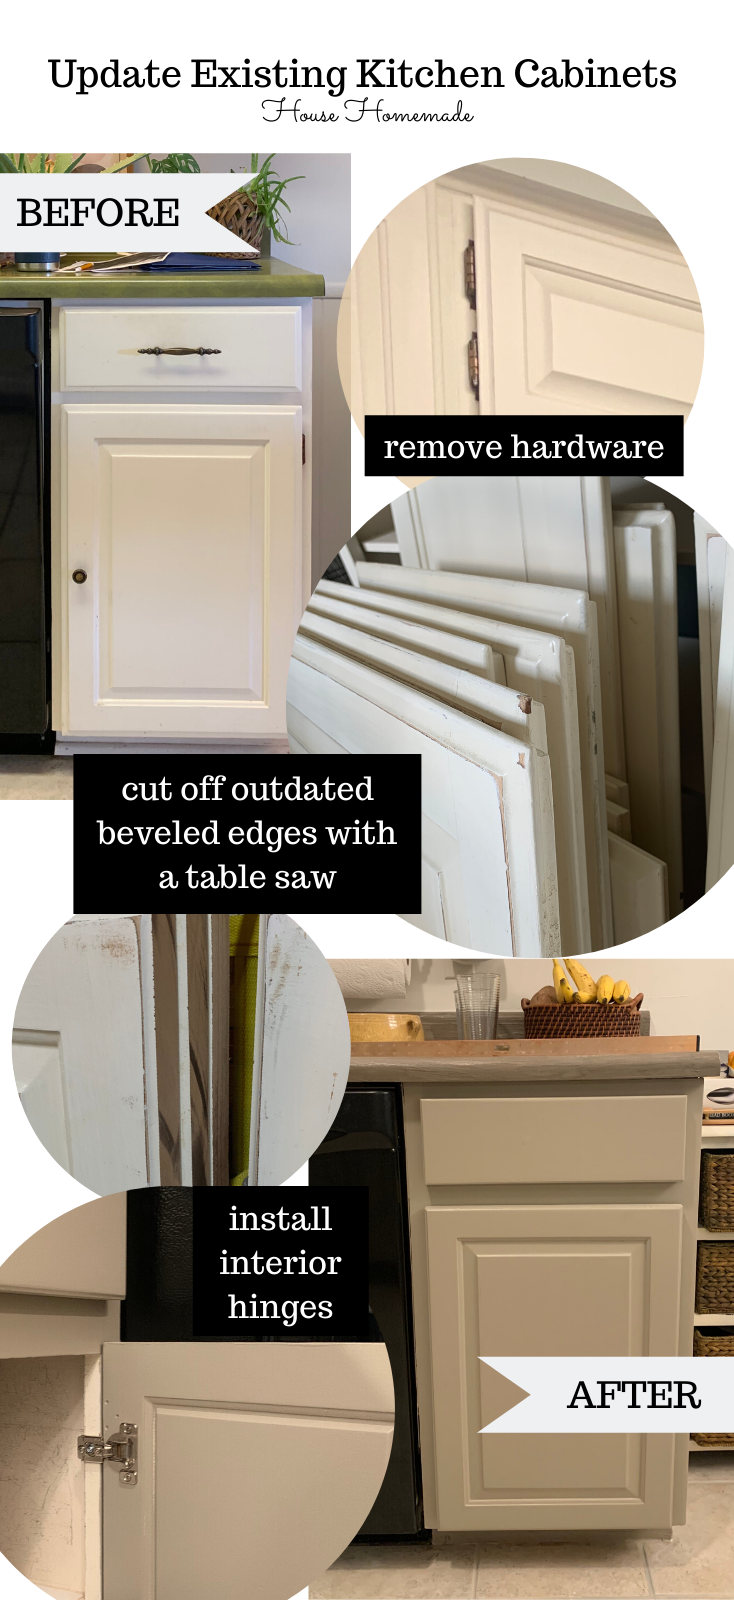 Budget Kitchen Makeover Converting Cabinet Doors From Exposed Hinges To Concealed House Homemade Budget Kitchen Makeover Update Cabinets Cabinet Doors